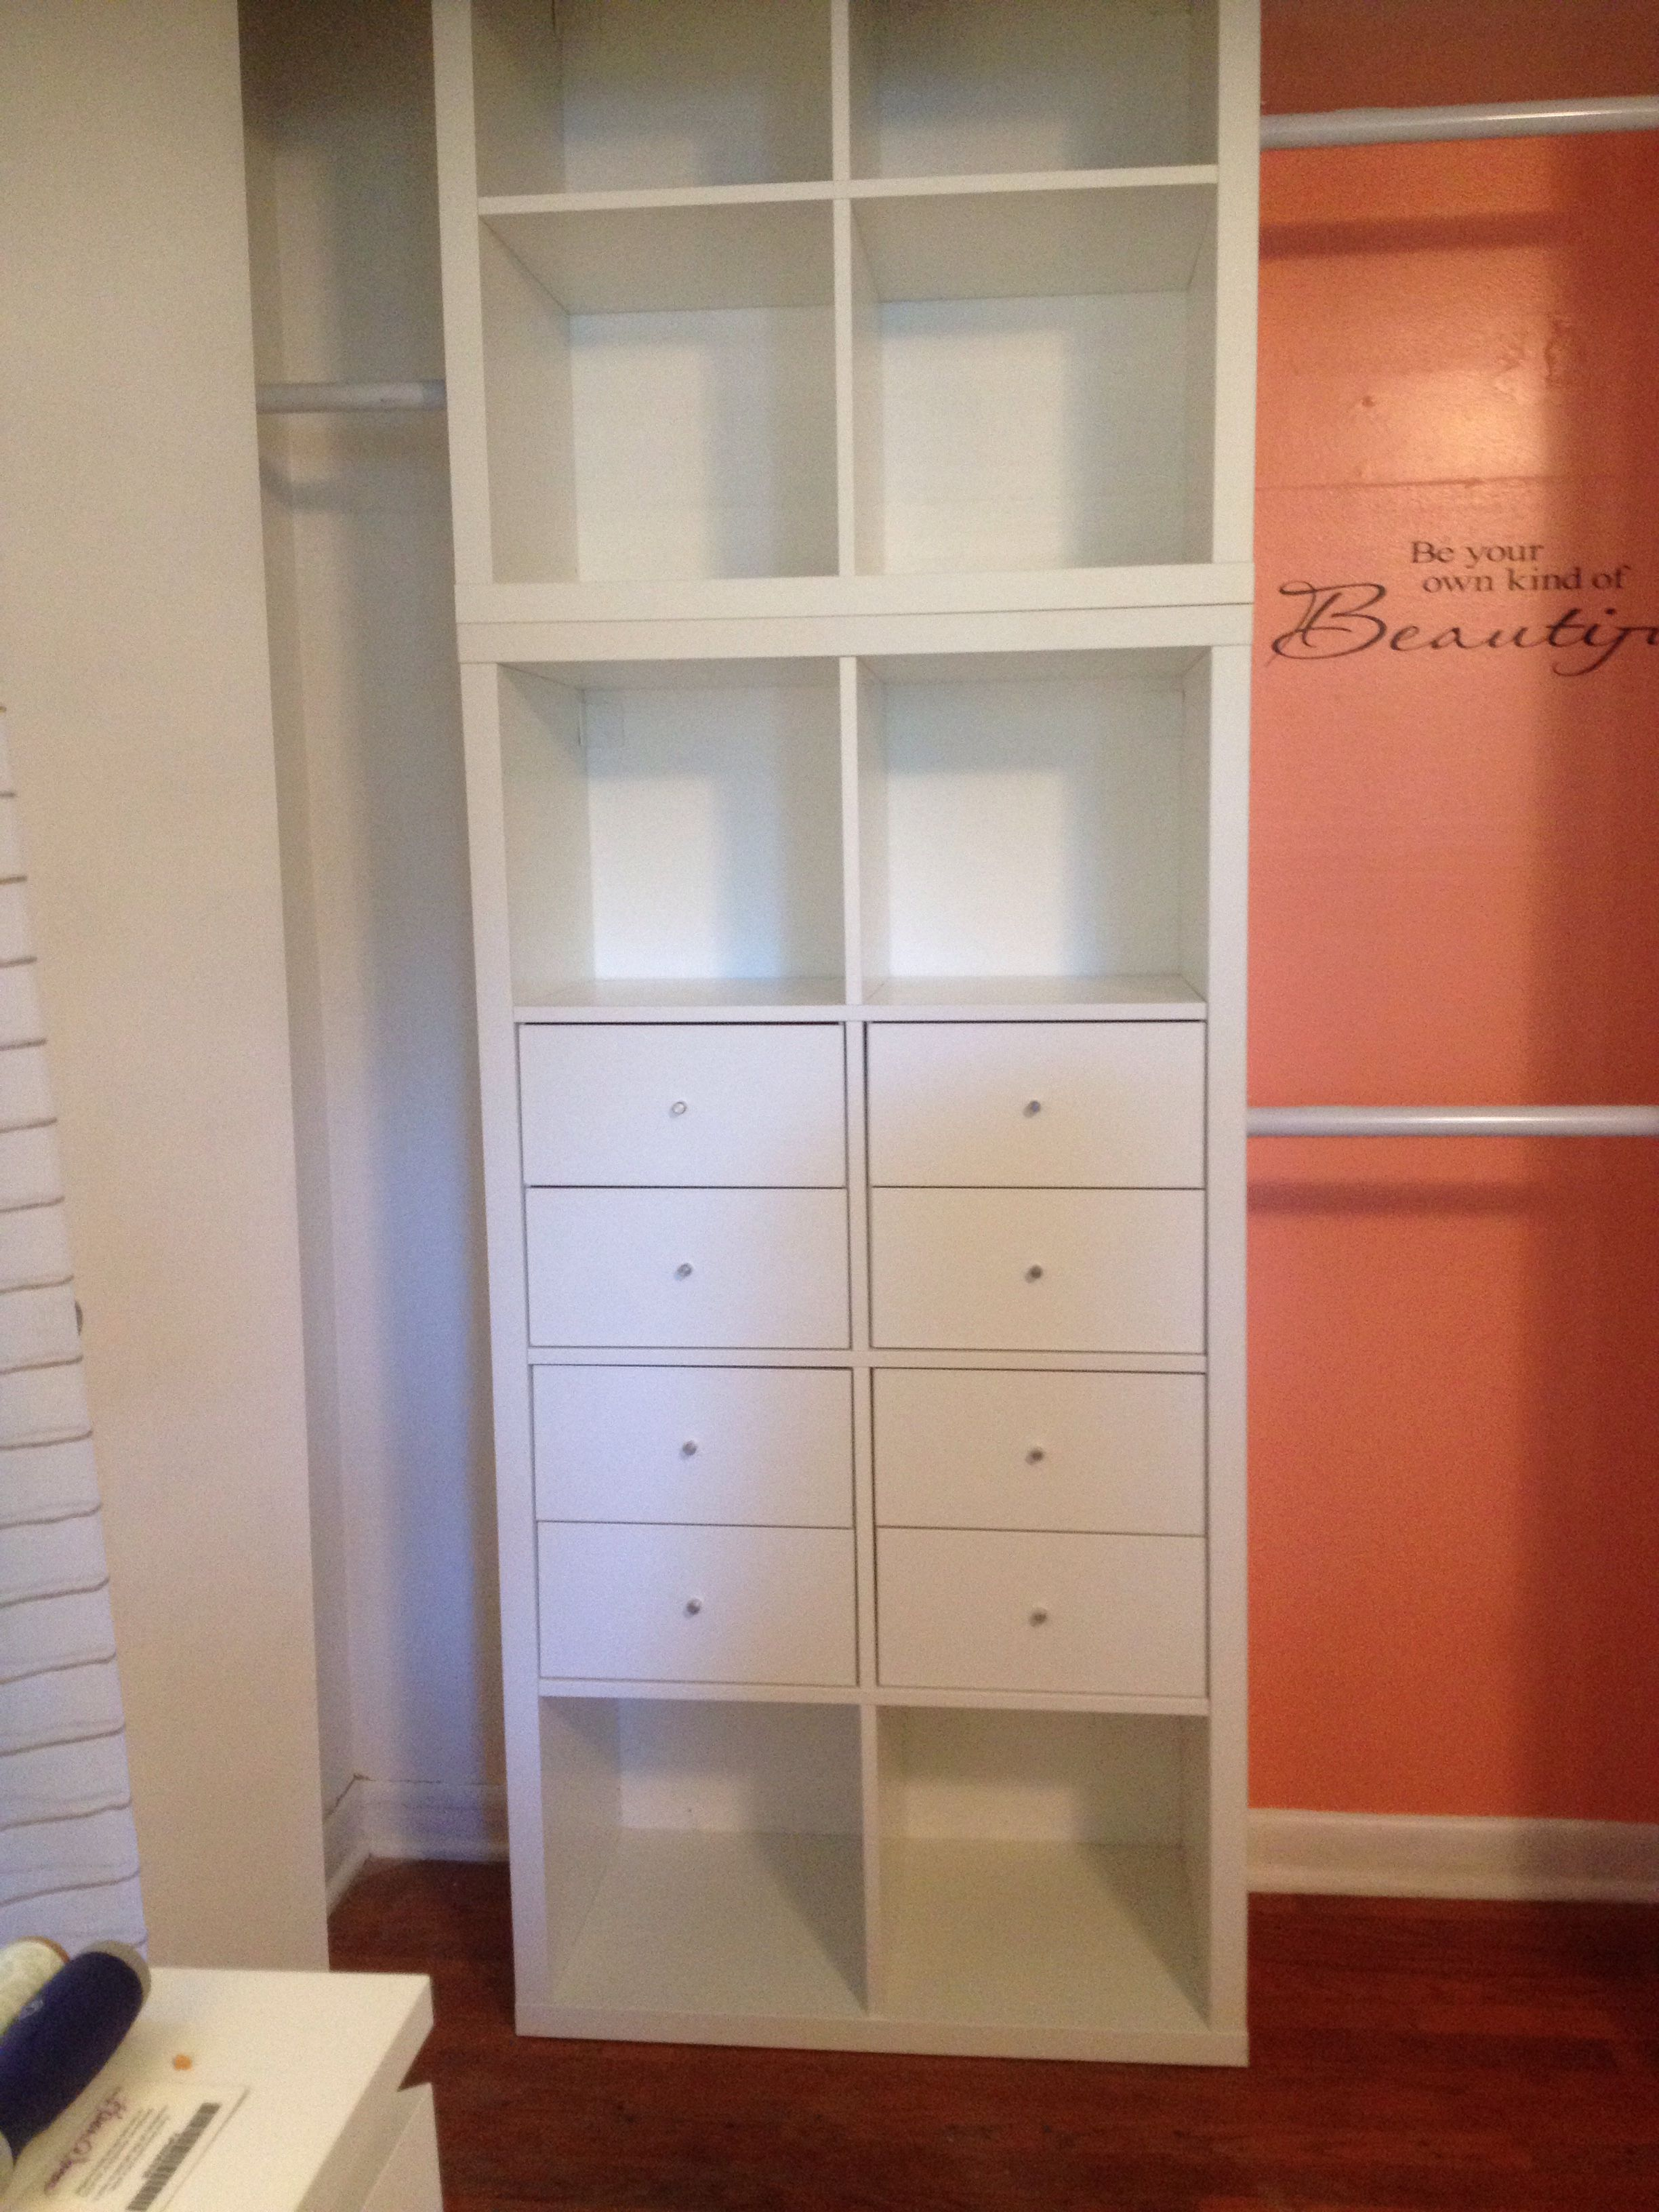 Garderobenhaken Kinderzimmer Ejhu Org Master Closet Ikea Kallax Shelving Wall Color Citrus Hill By